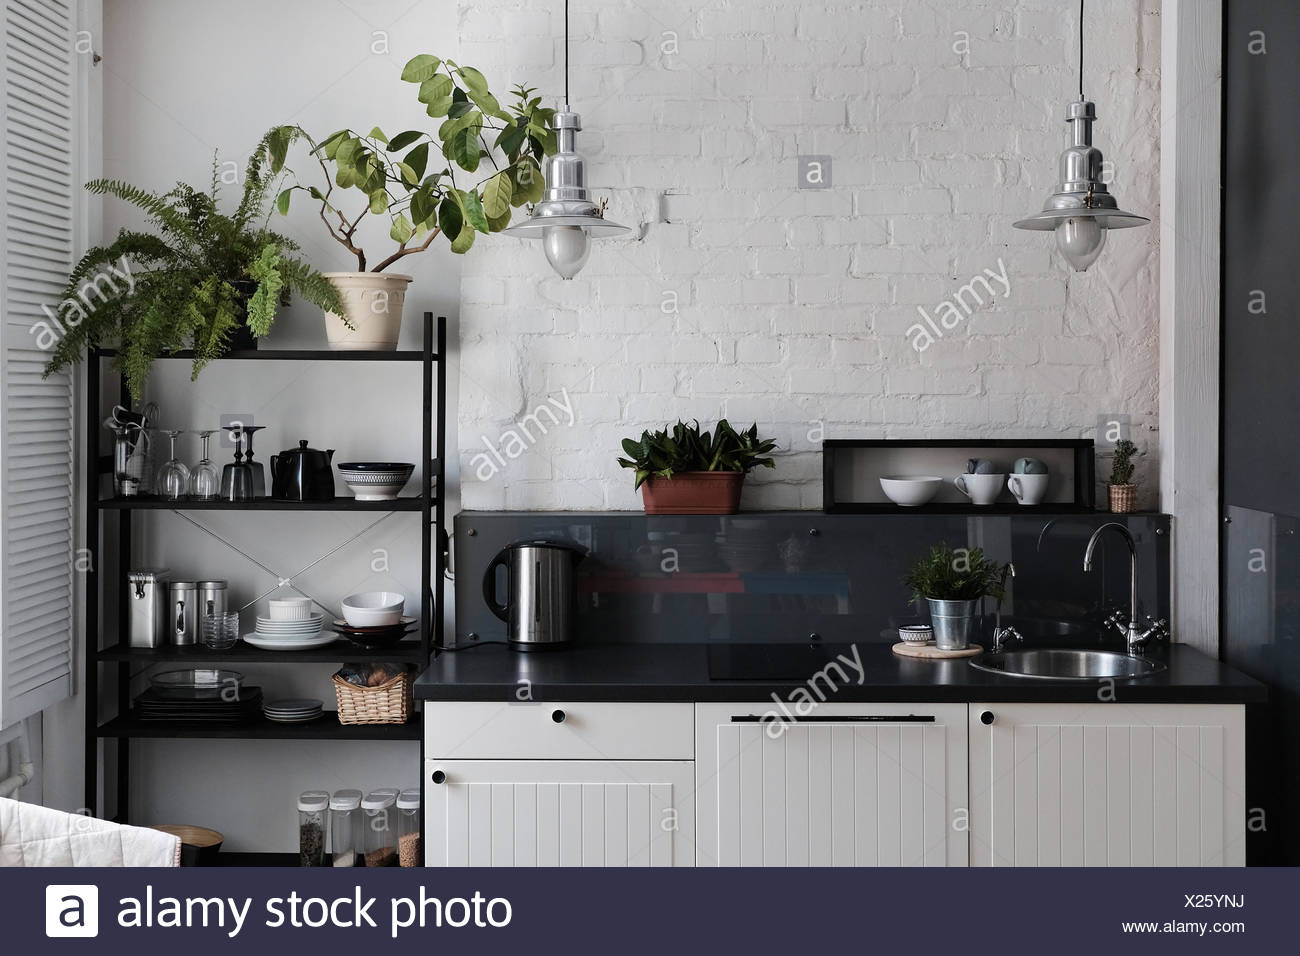 Kitchen with tidy counter and shelves - Stock Image